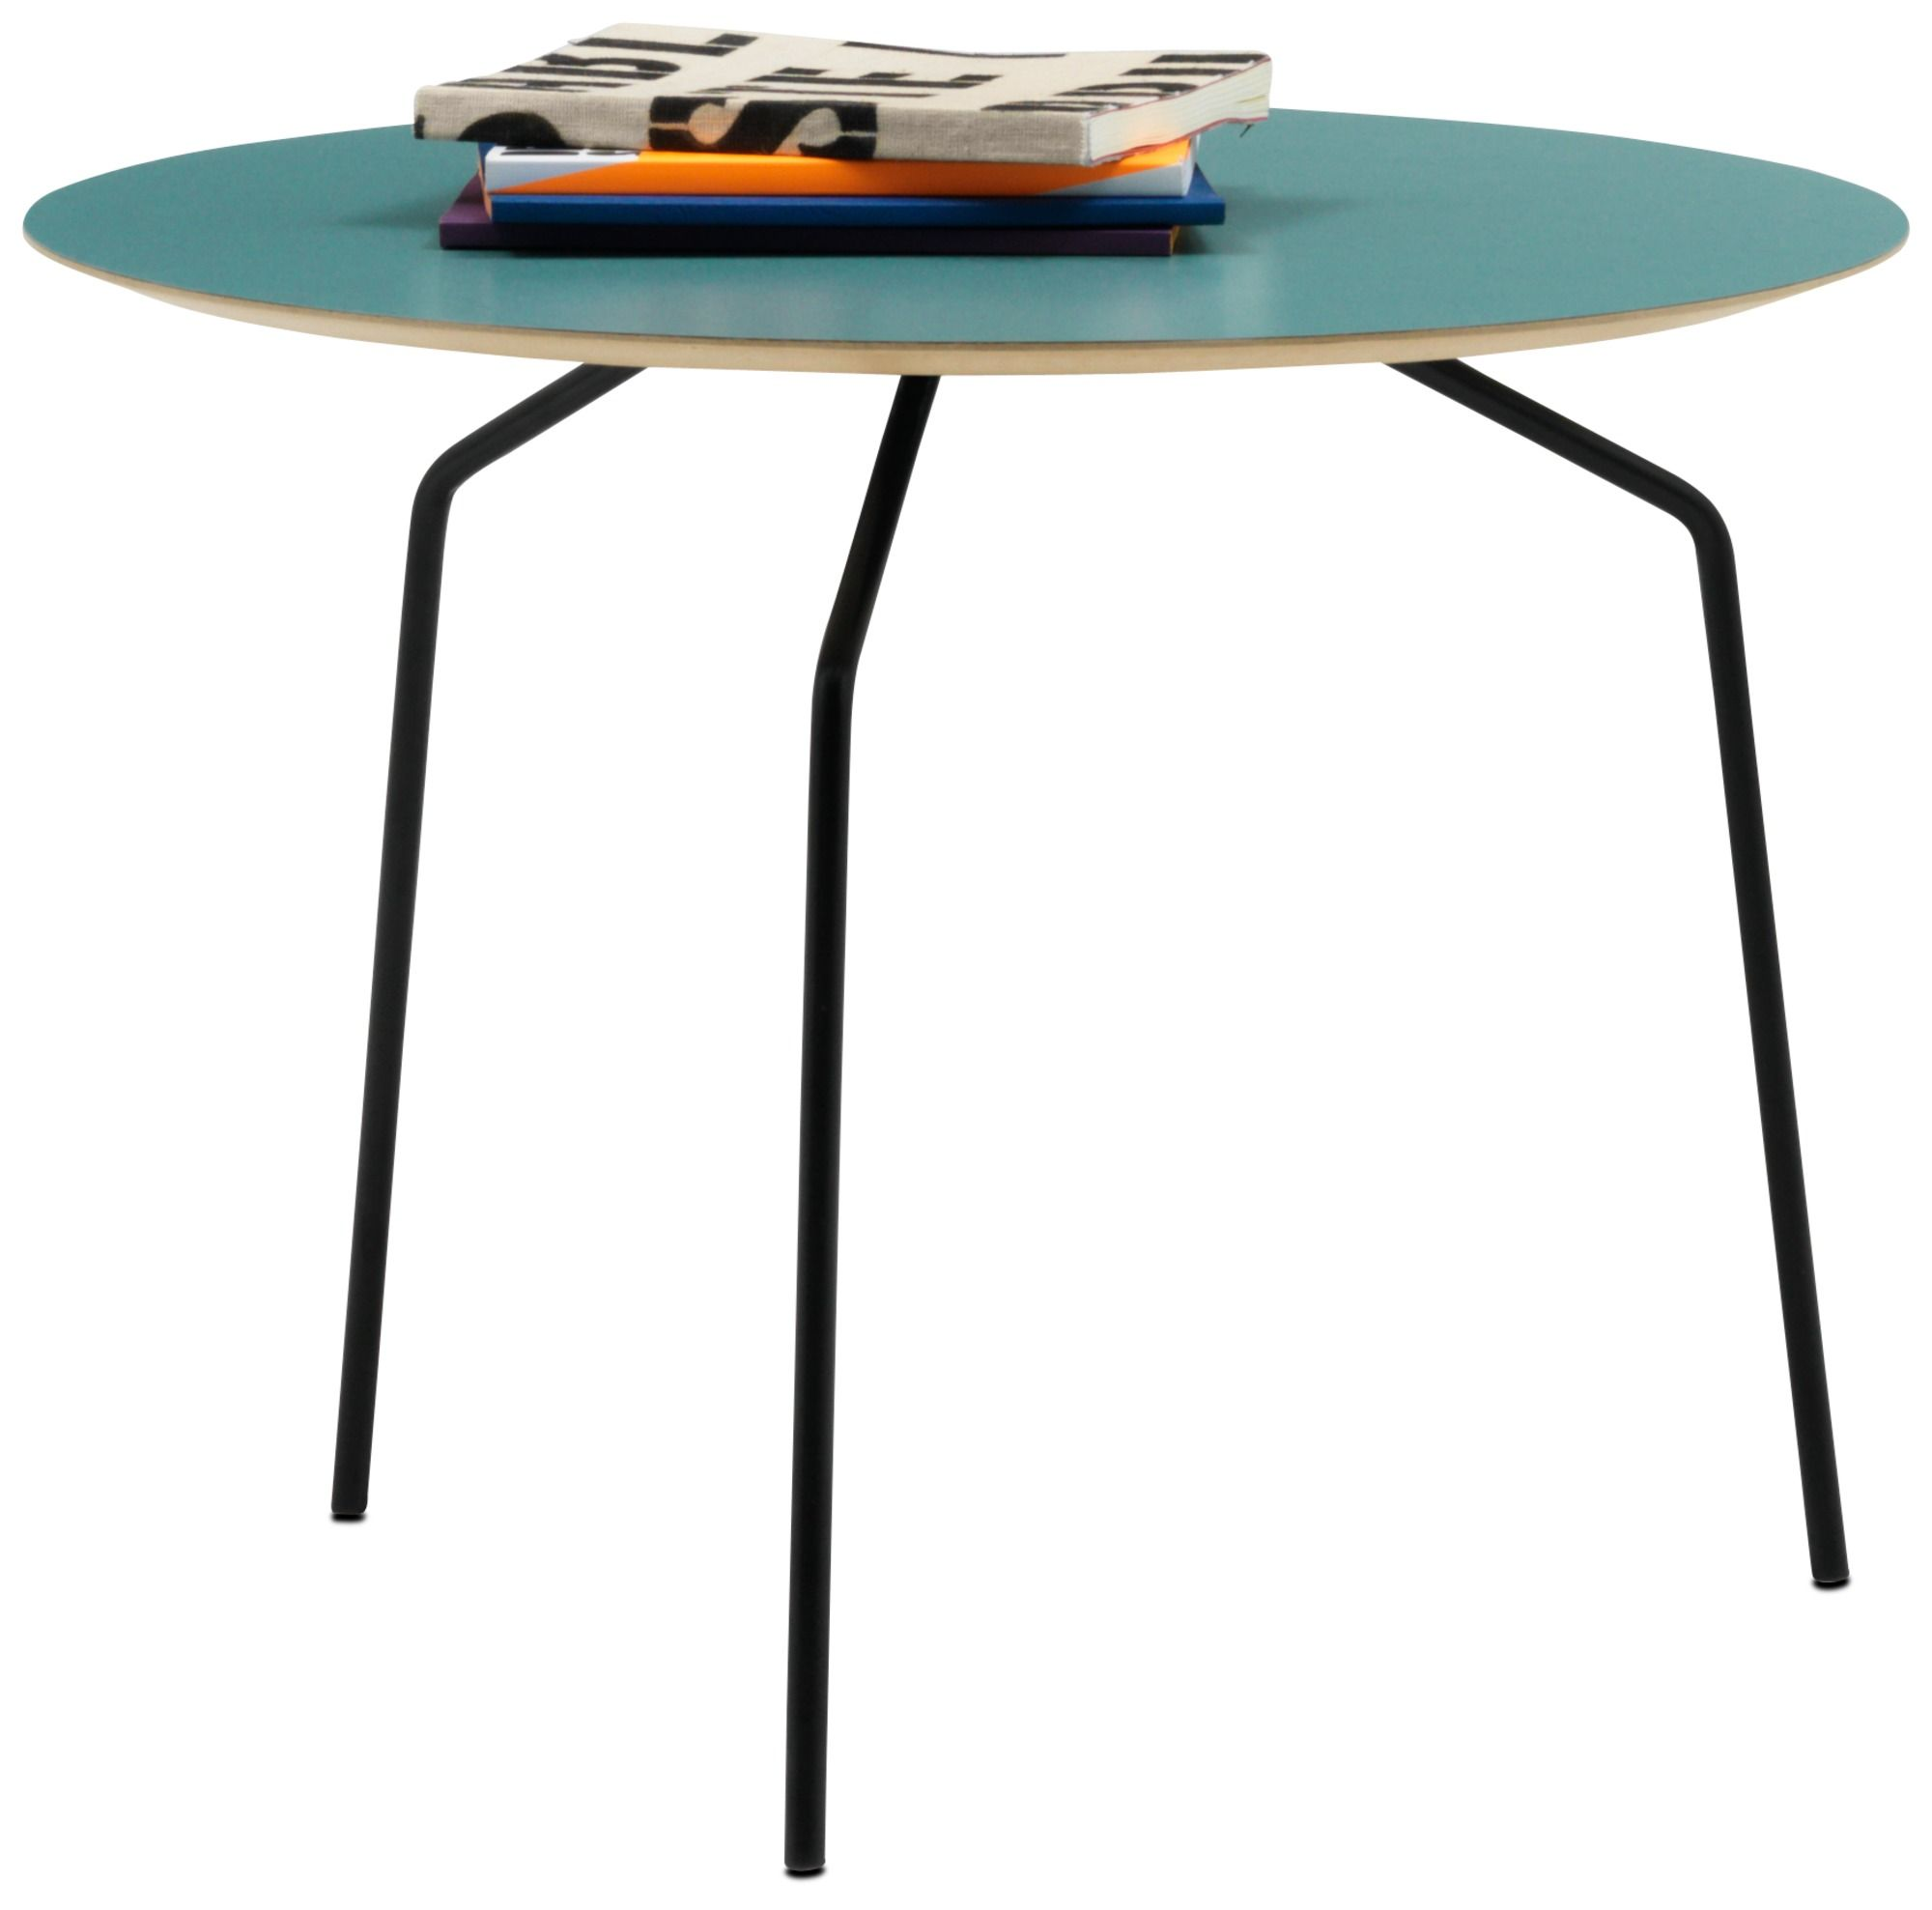 Discover Our Collection Of Modern Side Tables In A Range Sizes Colours And Shapes Designer Table By Boconcept Is An Eye Catcher Any Room